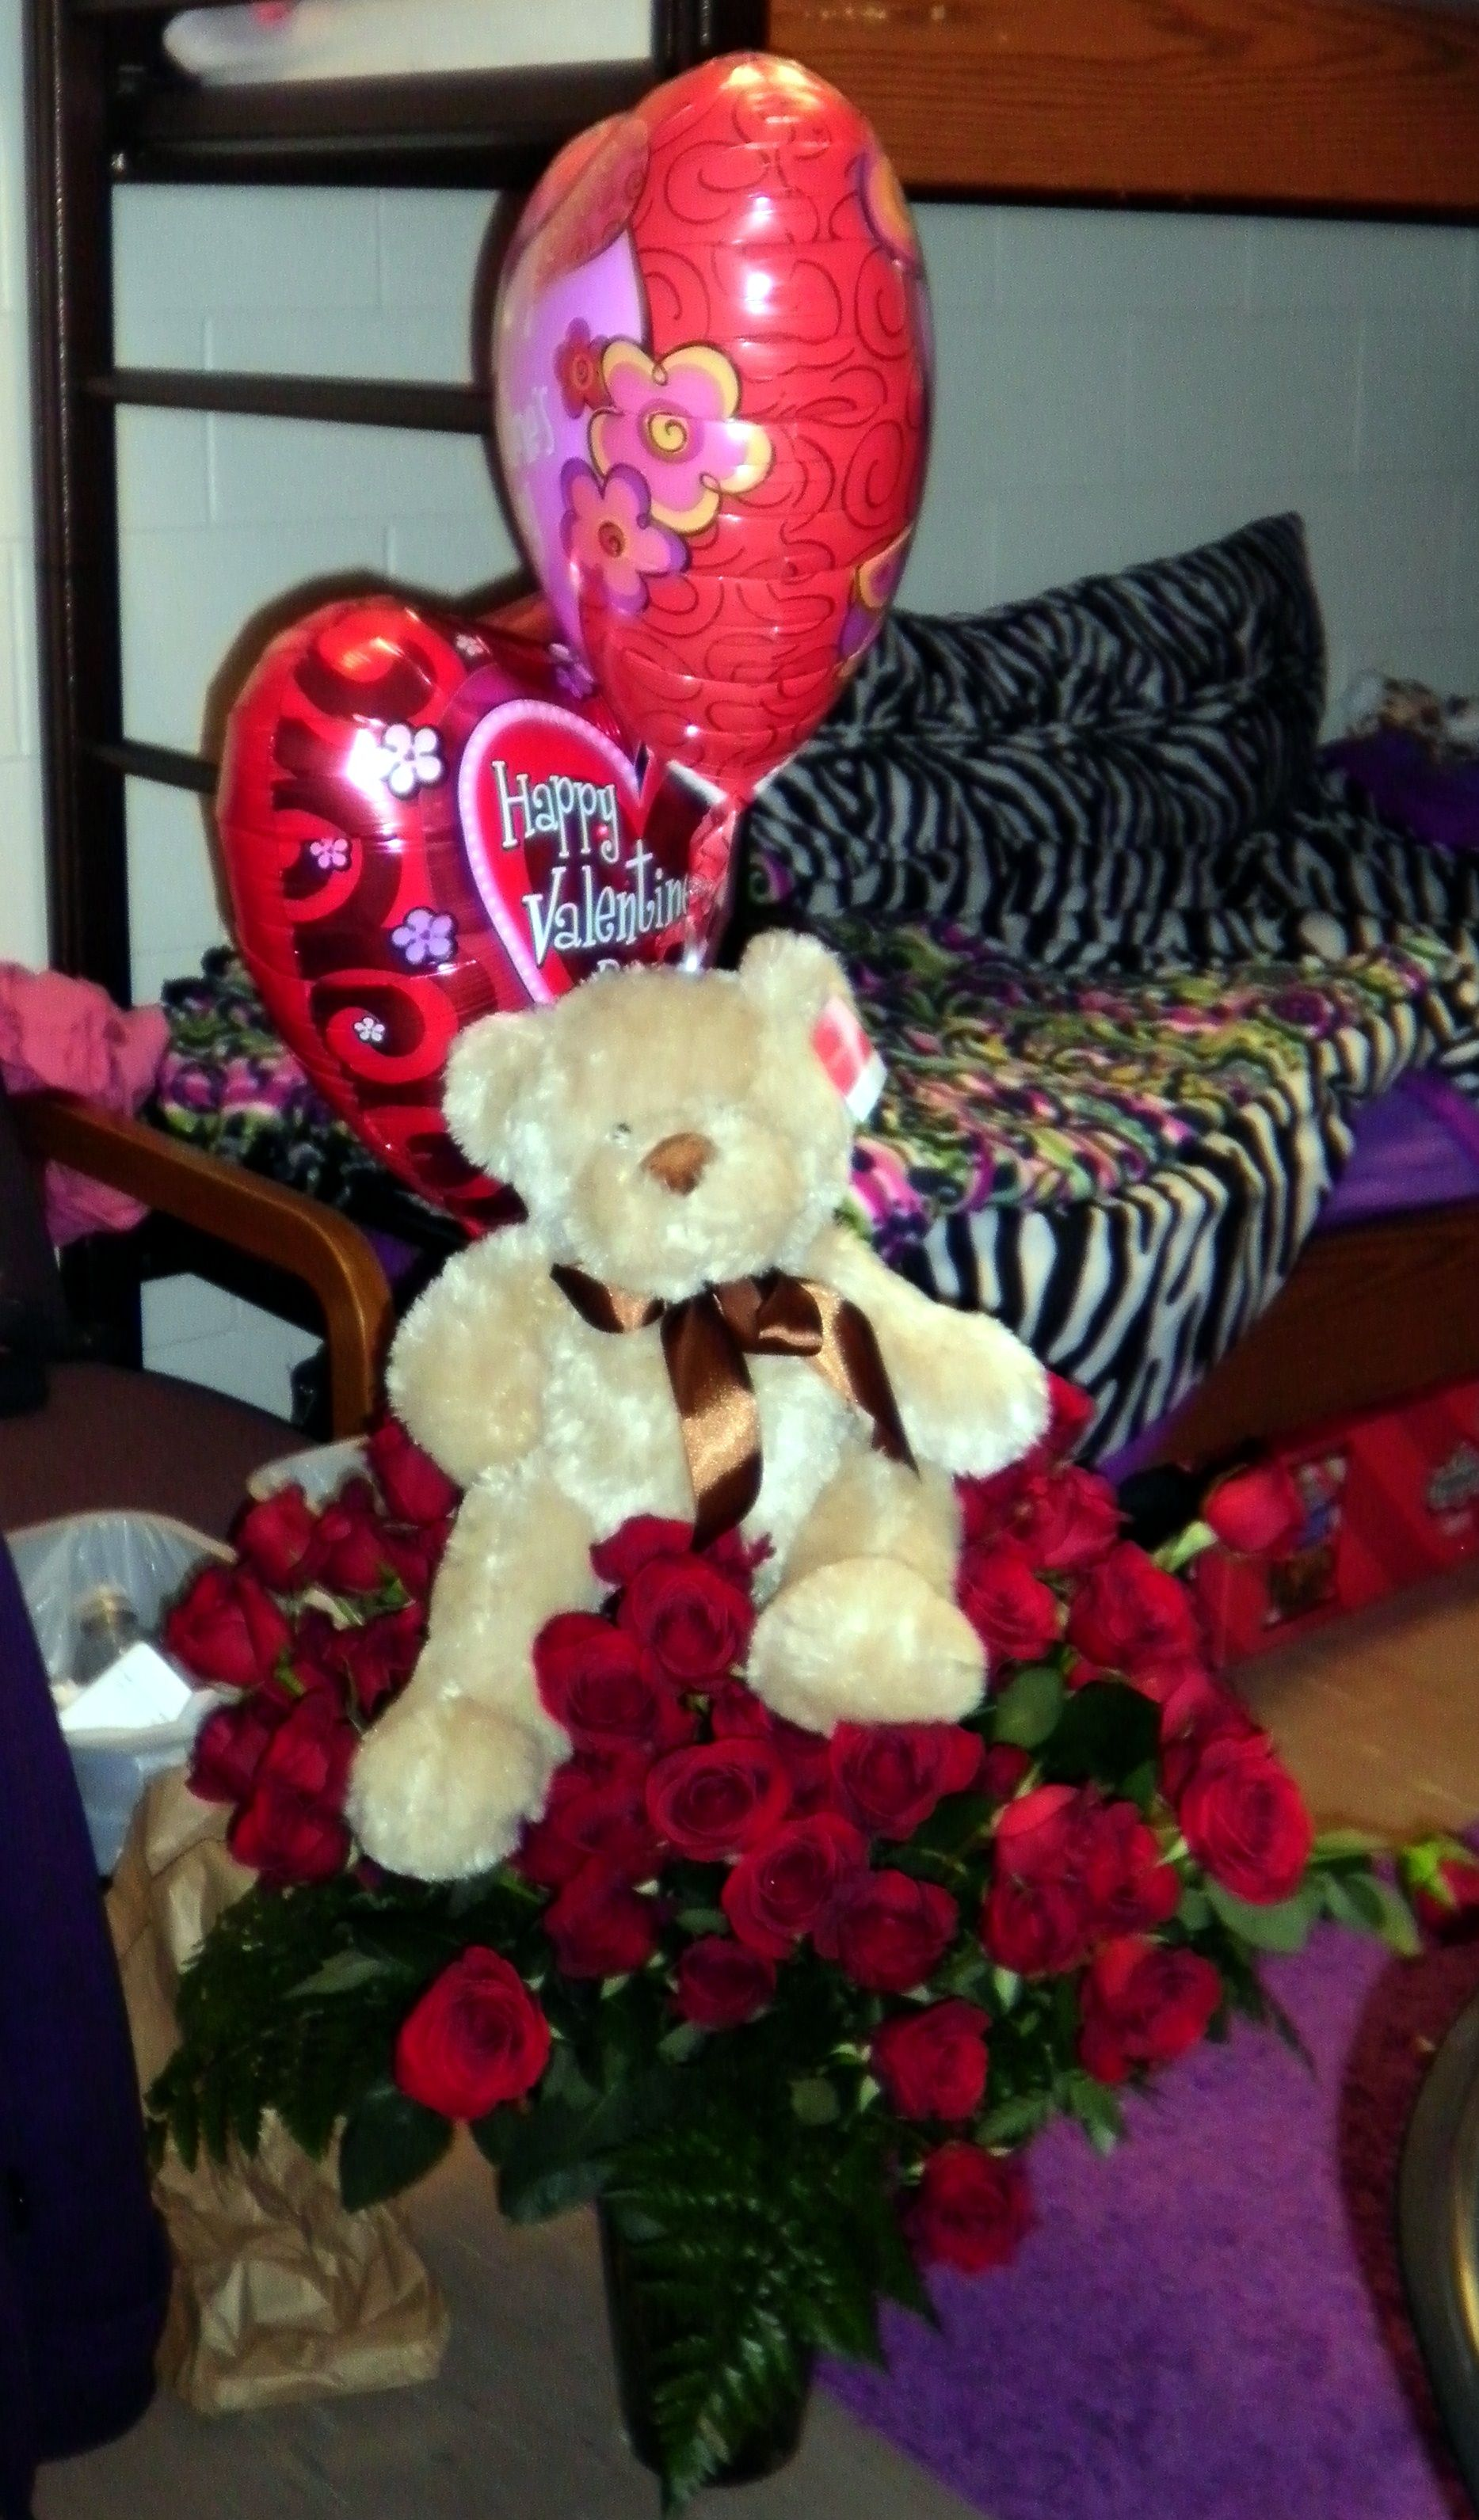 valentine's day red teddy bear